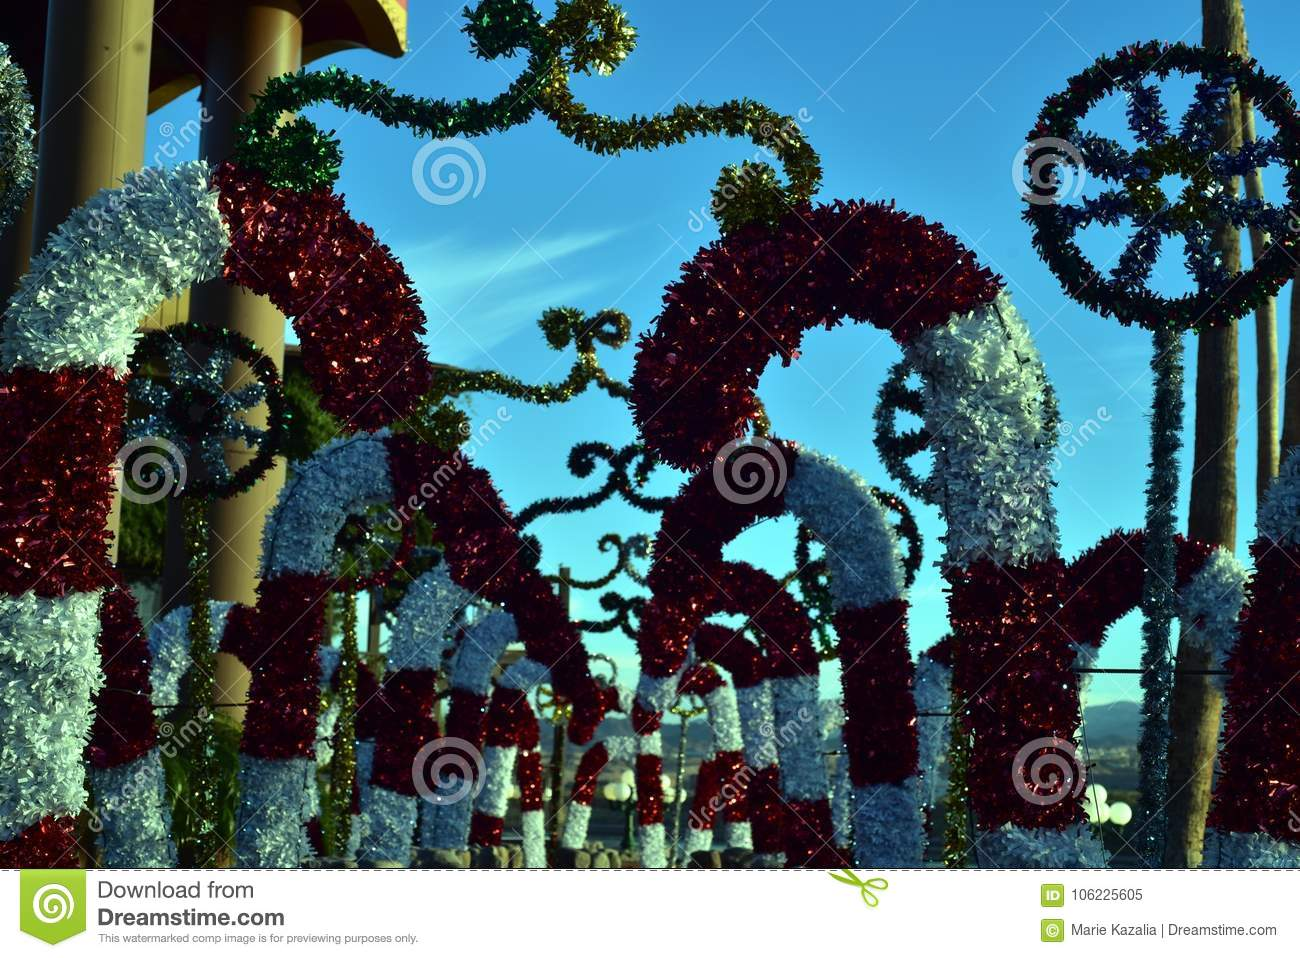 christmas decorations in desert with palm trees